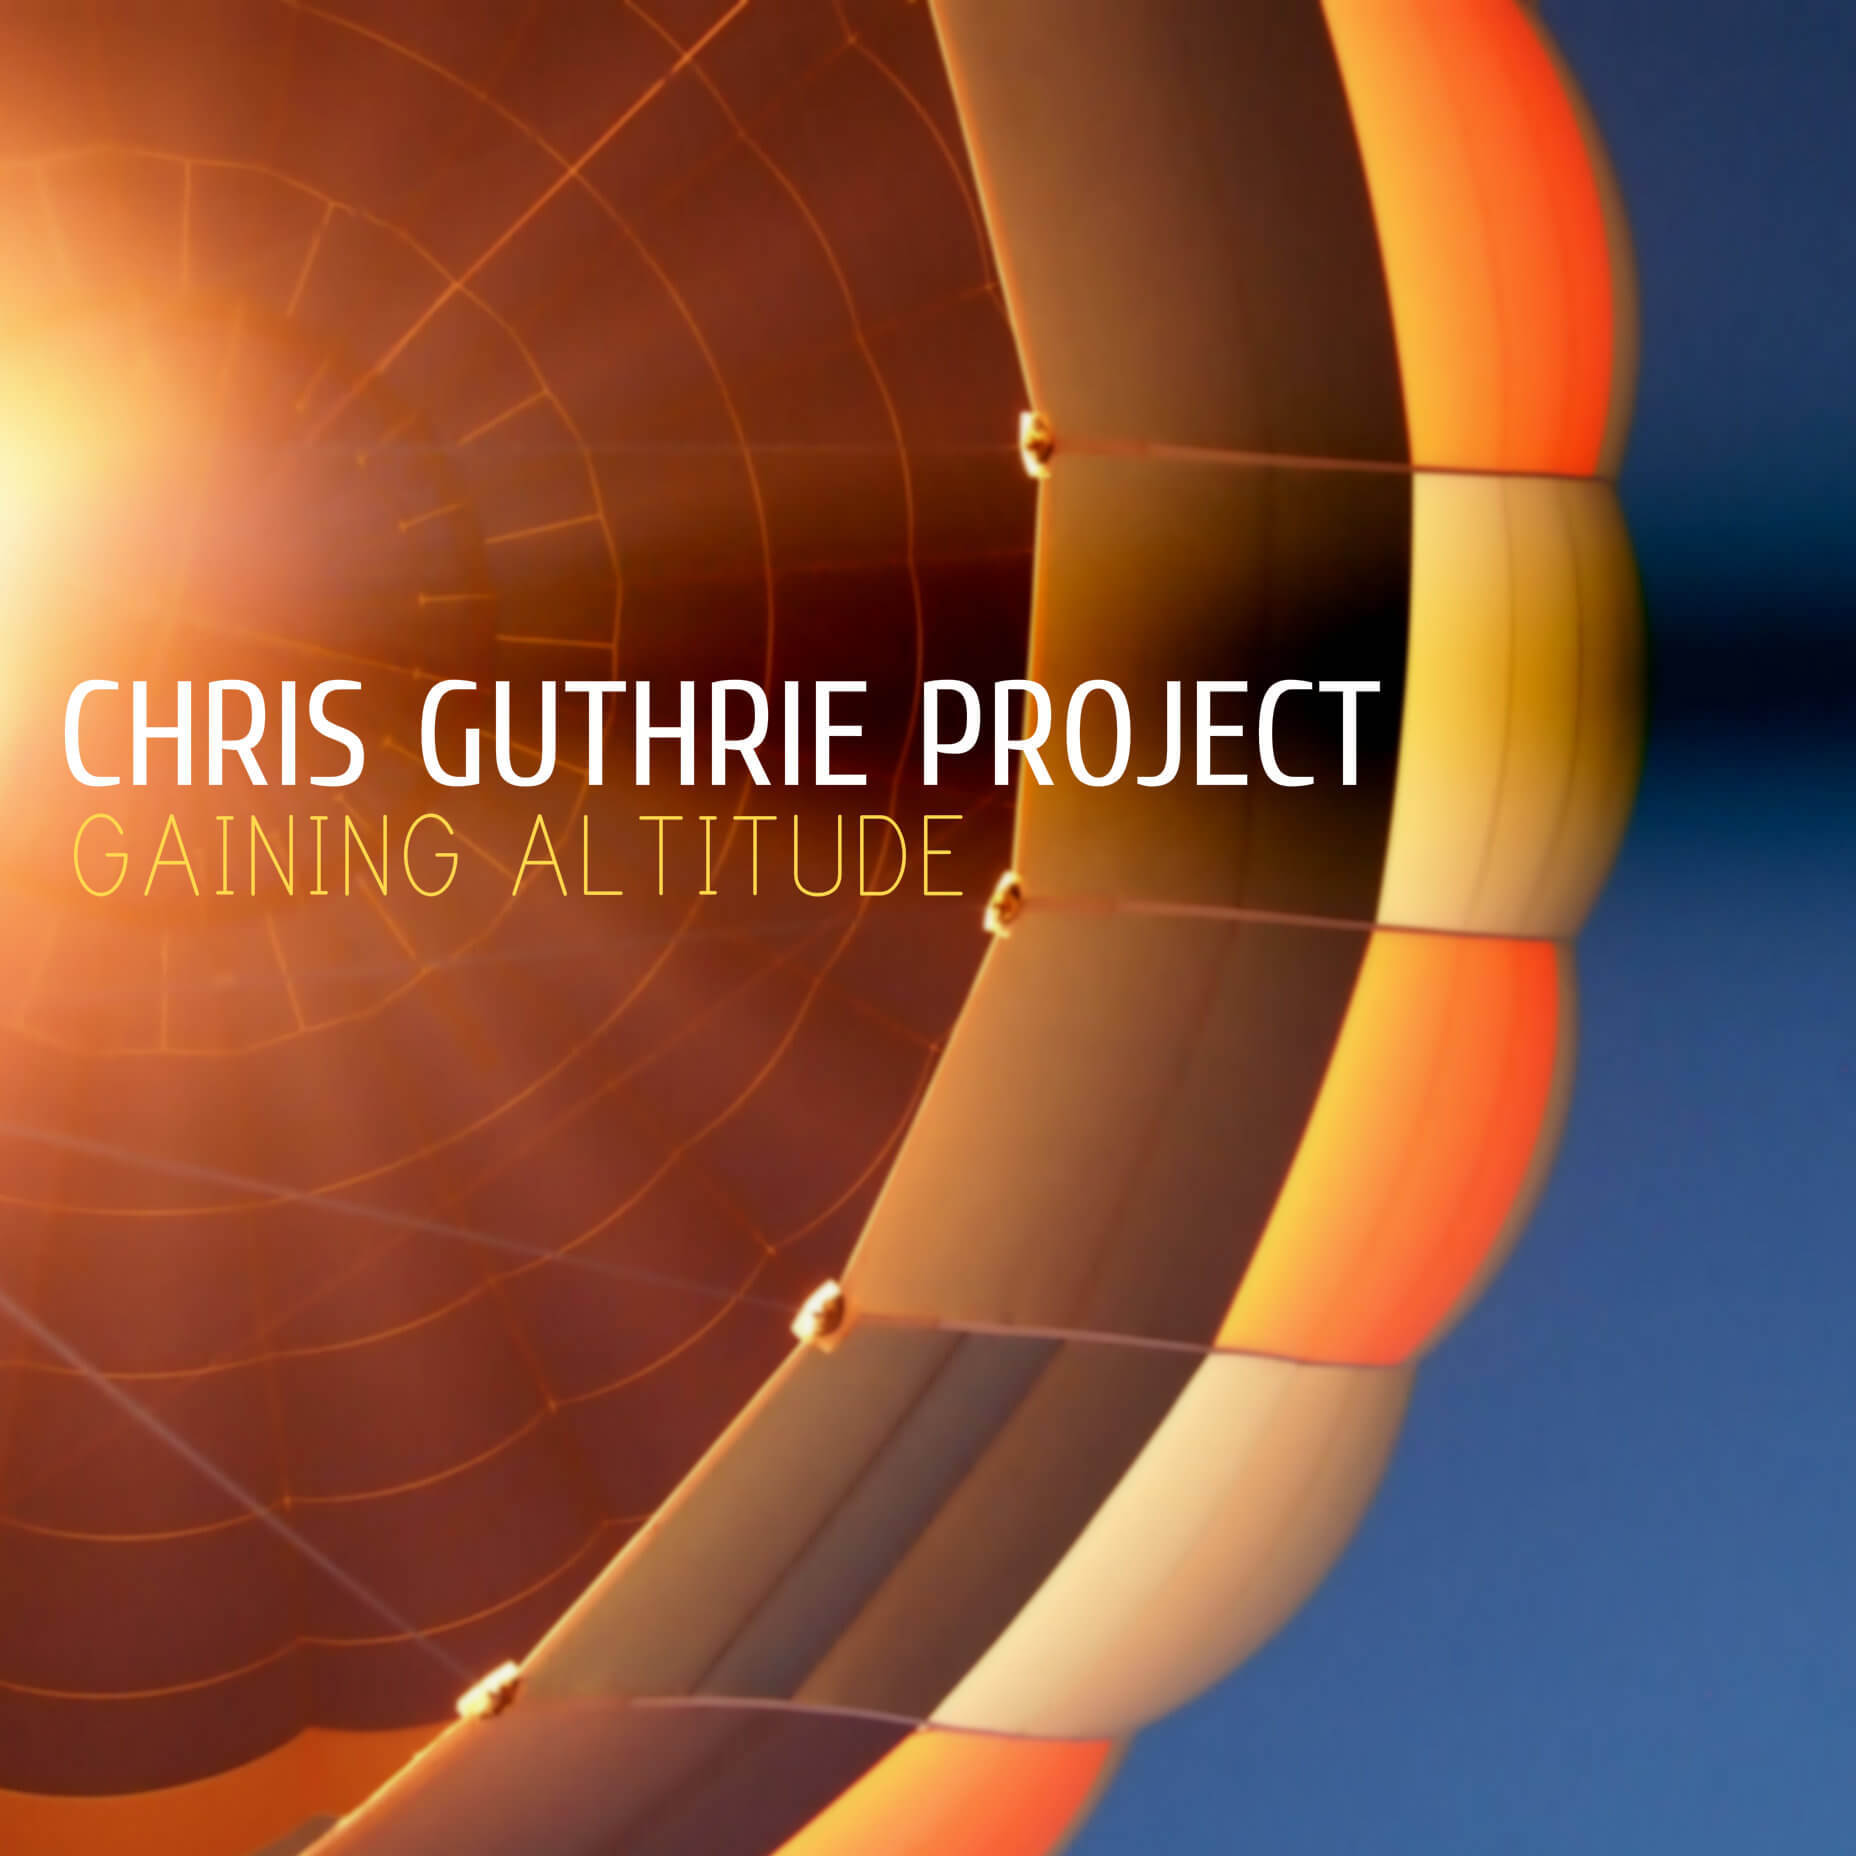 Chris Guthrie Project - Gaining Altitude single